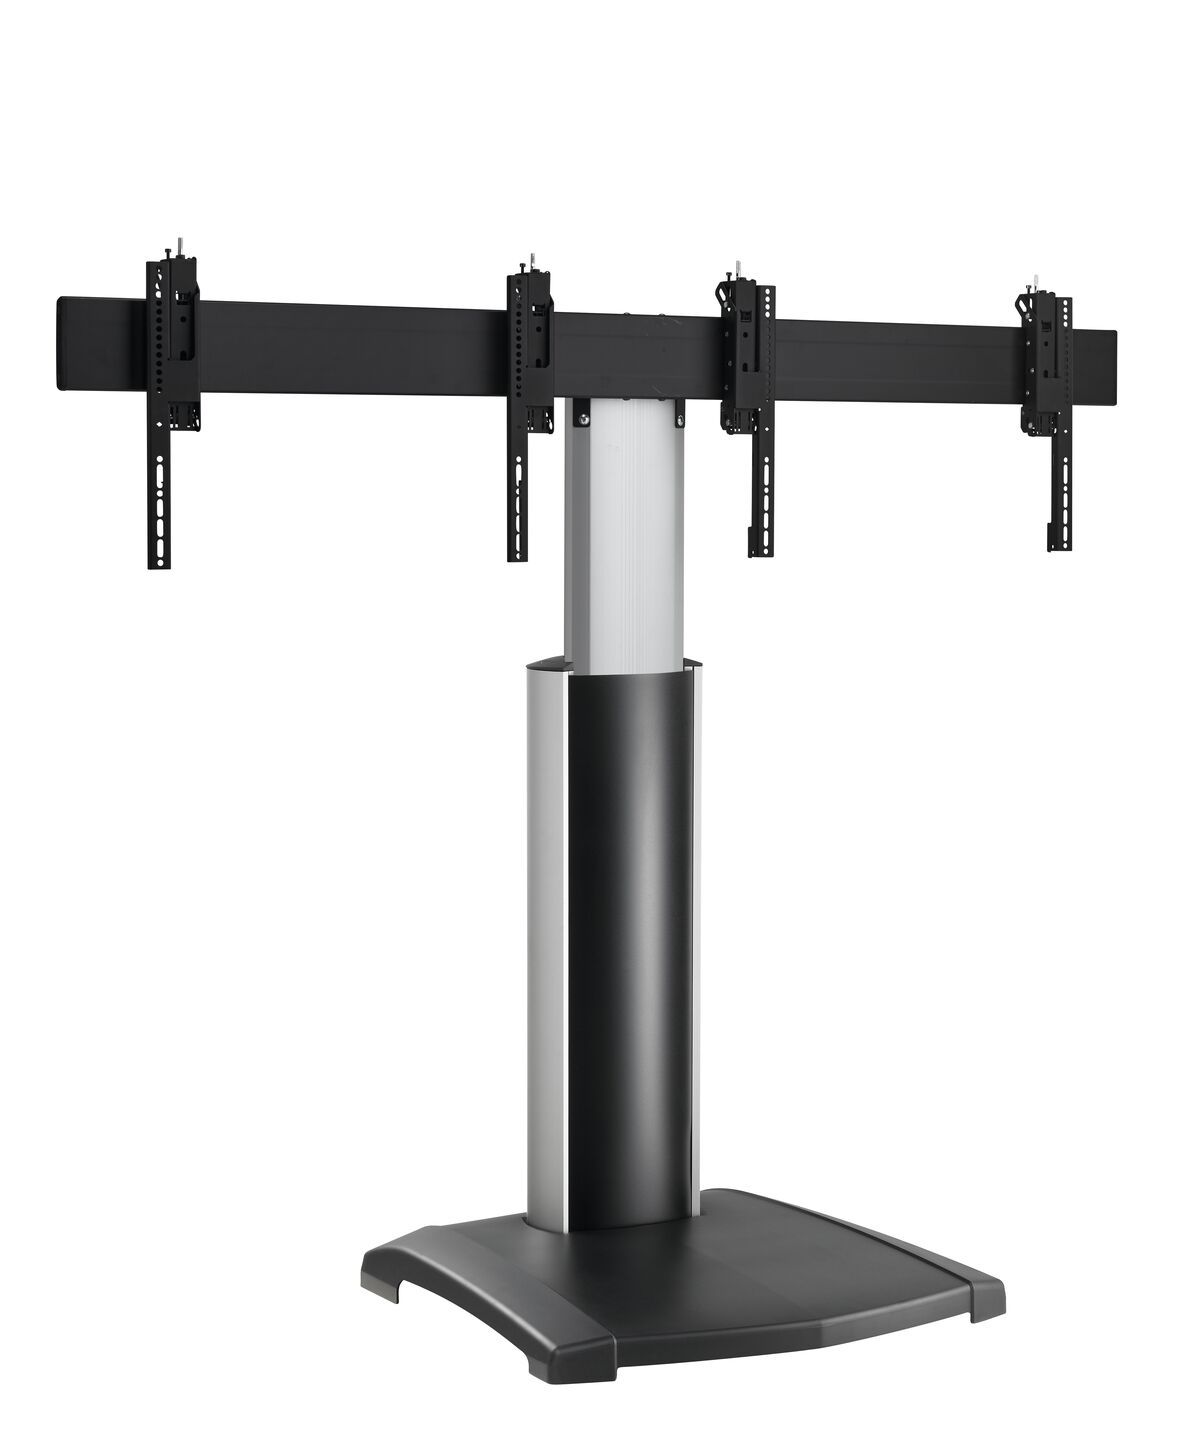 Vogel's PFF 2420 Display floor stand - Detail